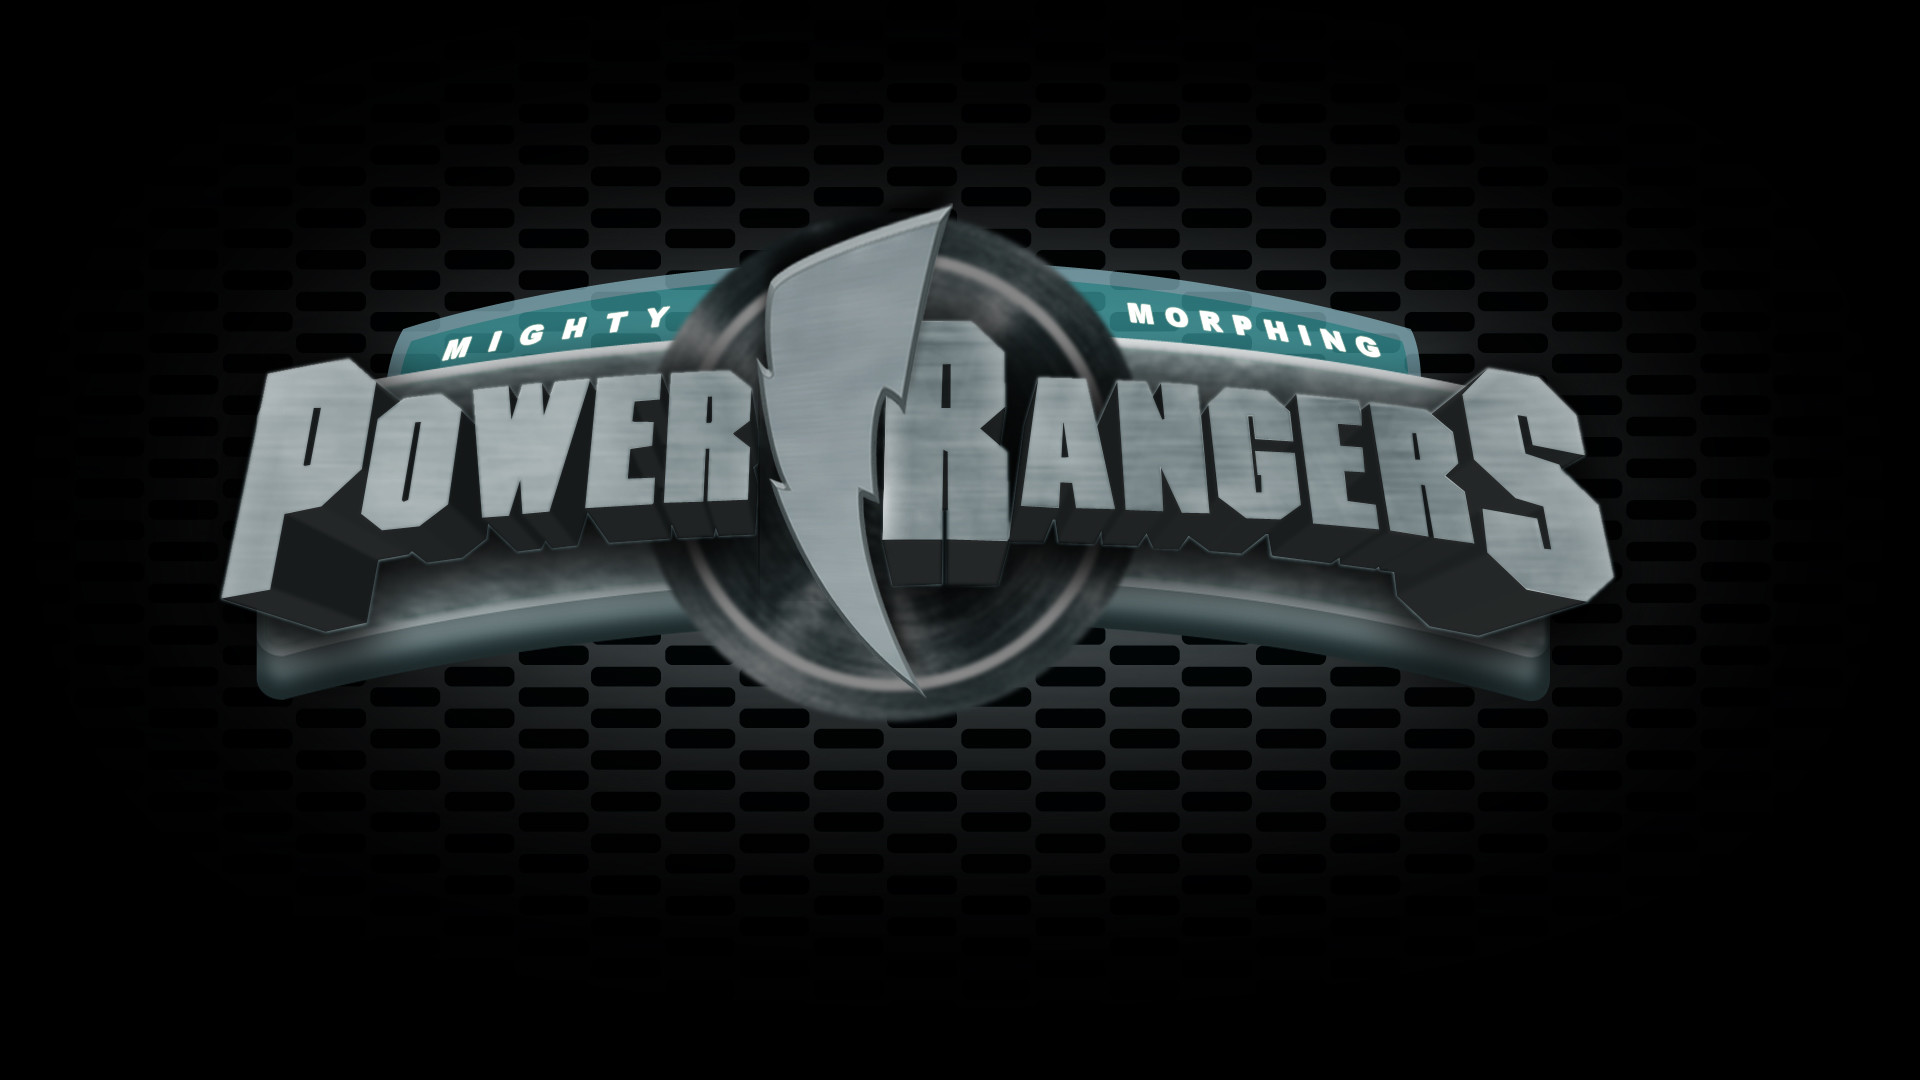 1920x1080 Power Rangers Wallpaper - QyGjxZ ...